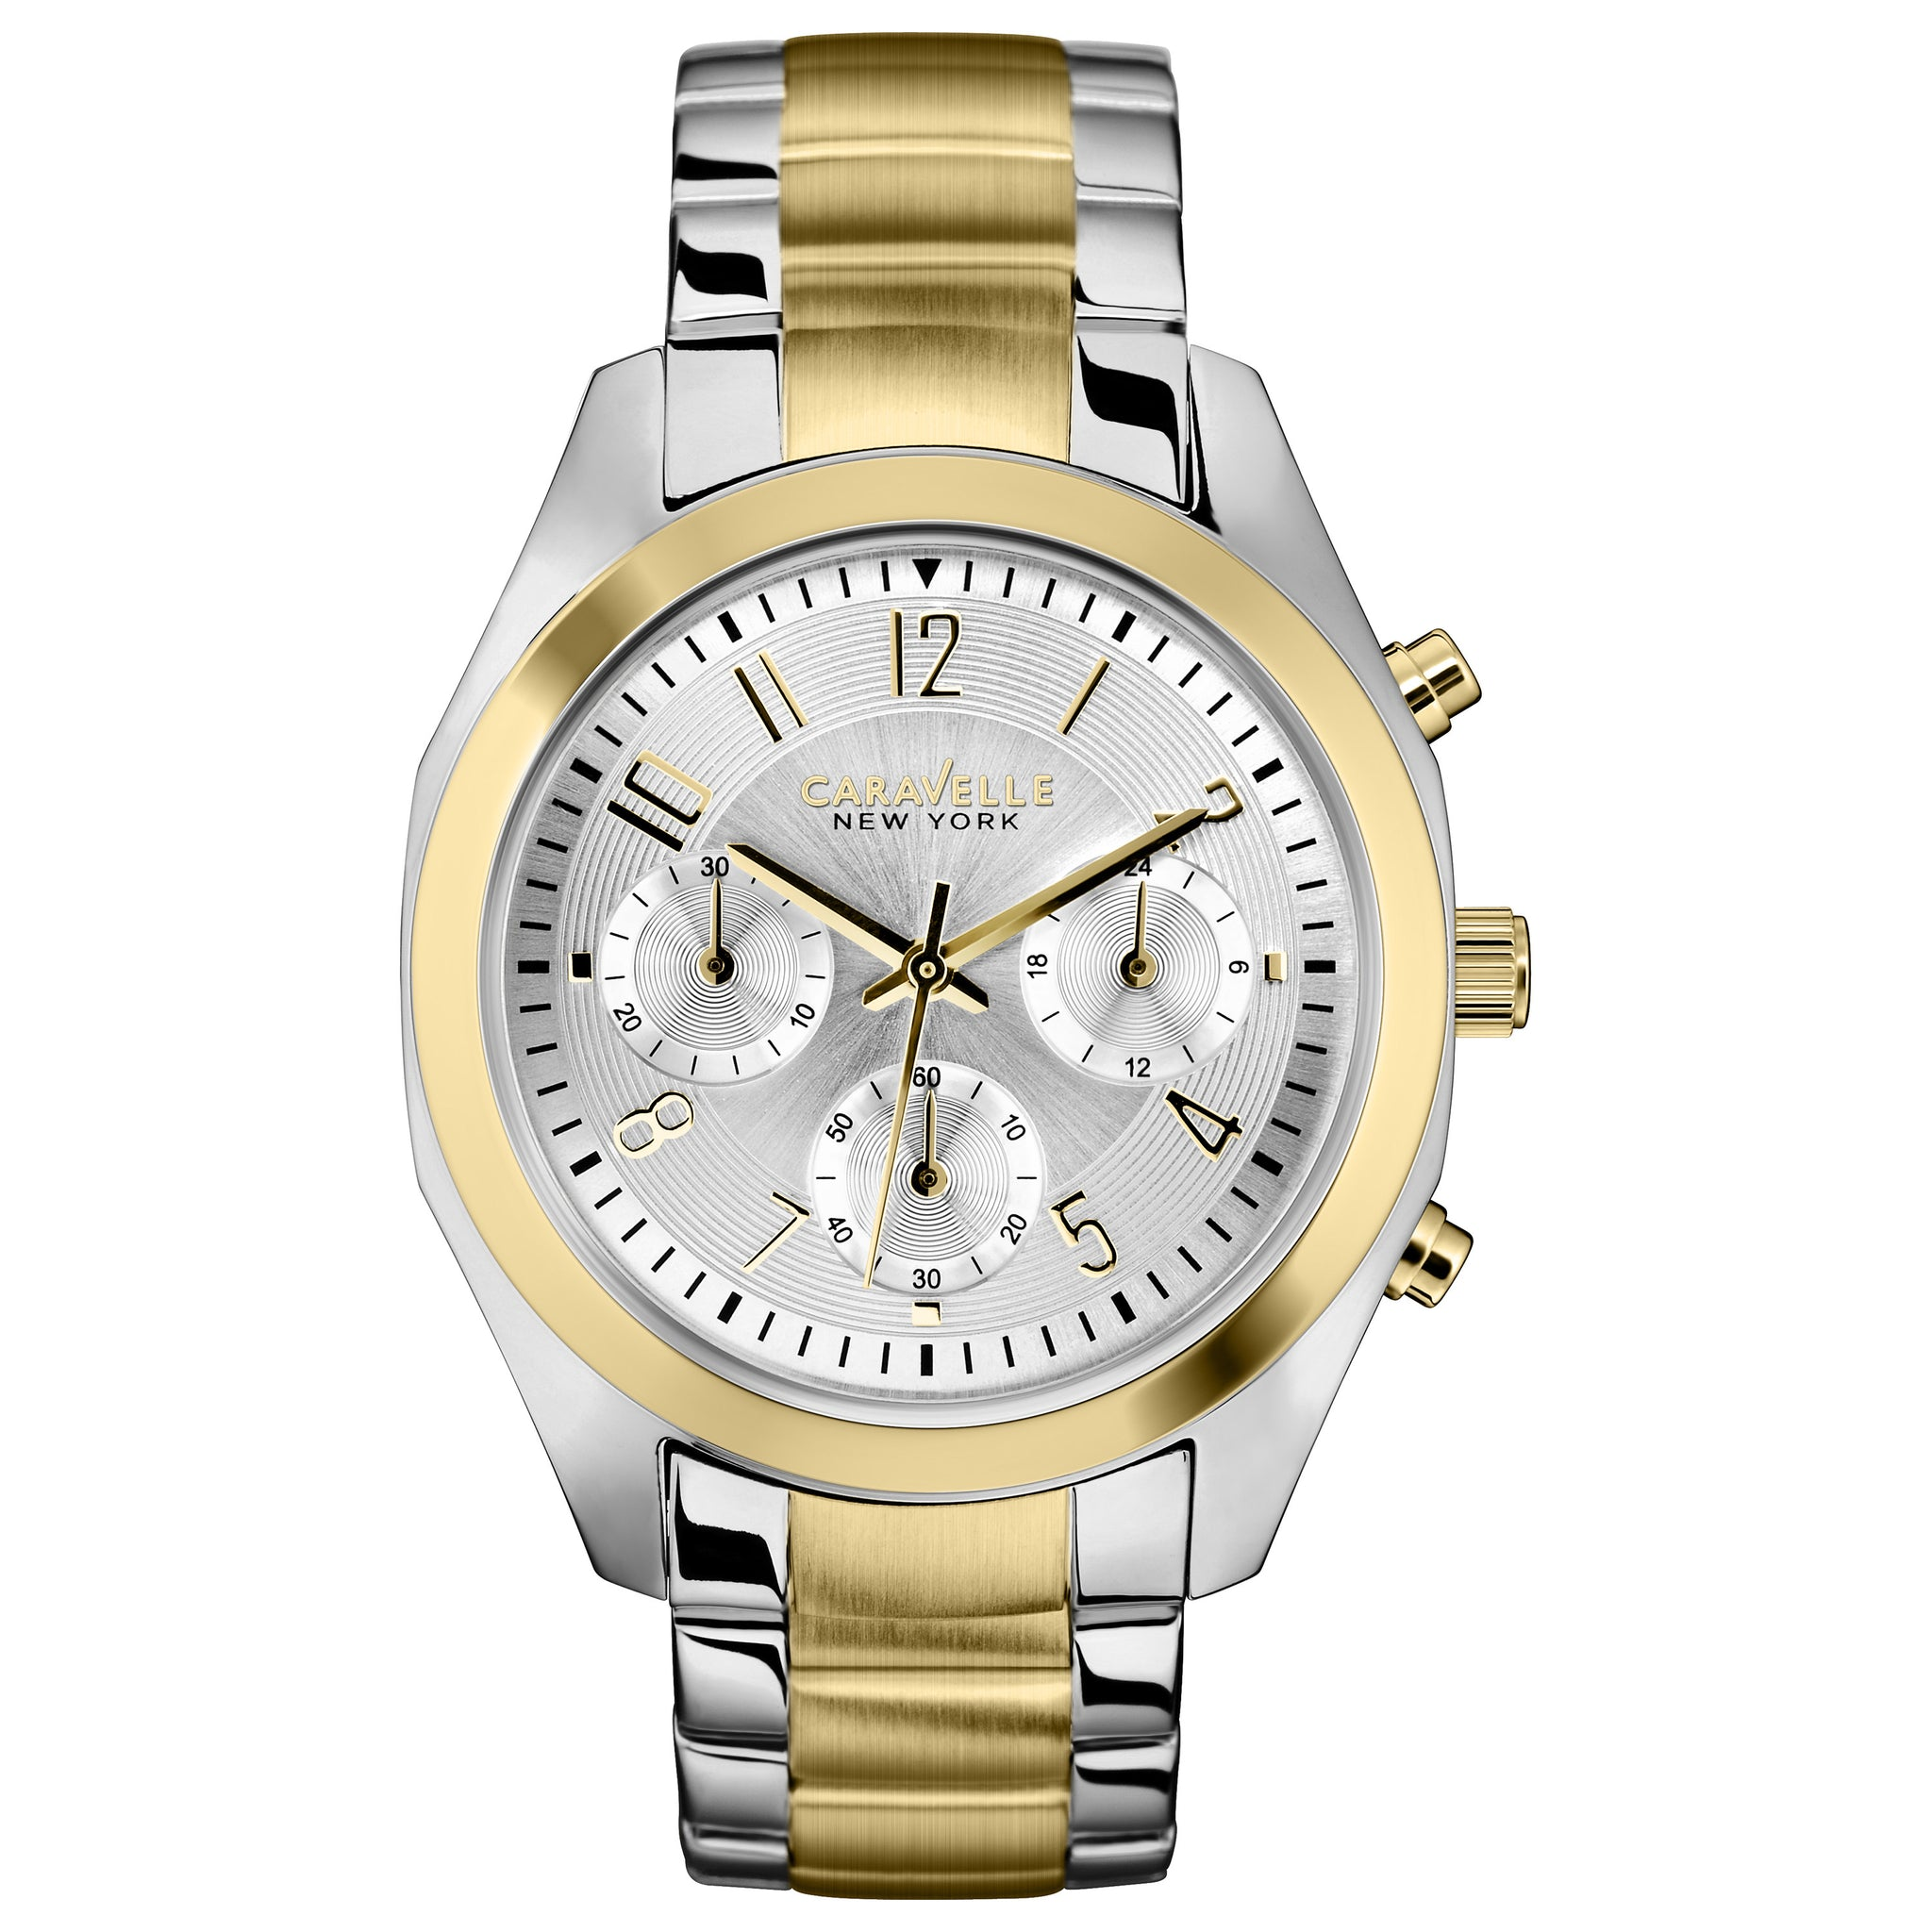 Caravelle New York 'Melissa' Chronograph Watch